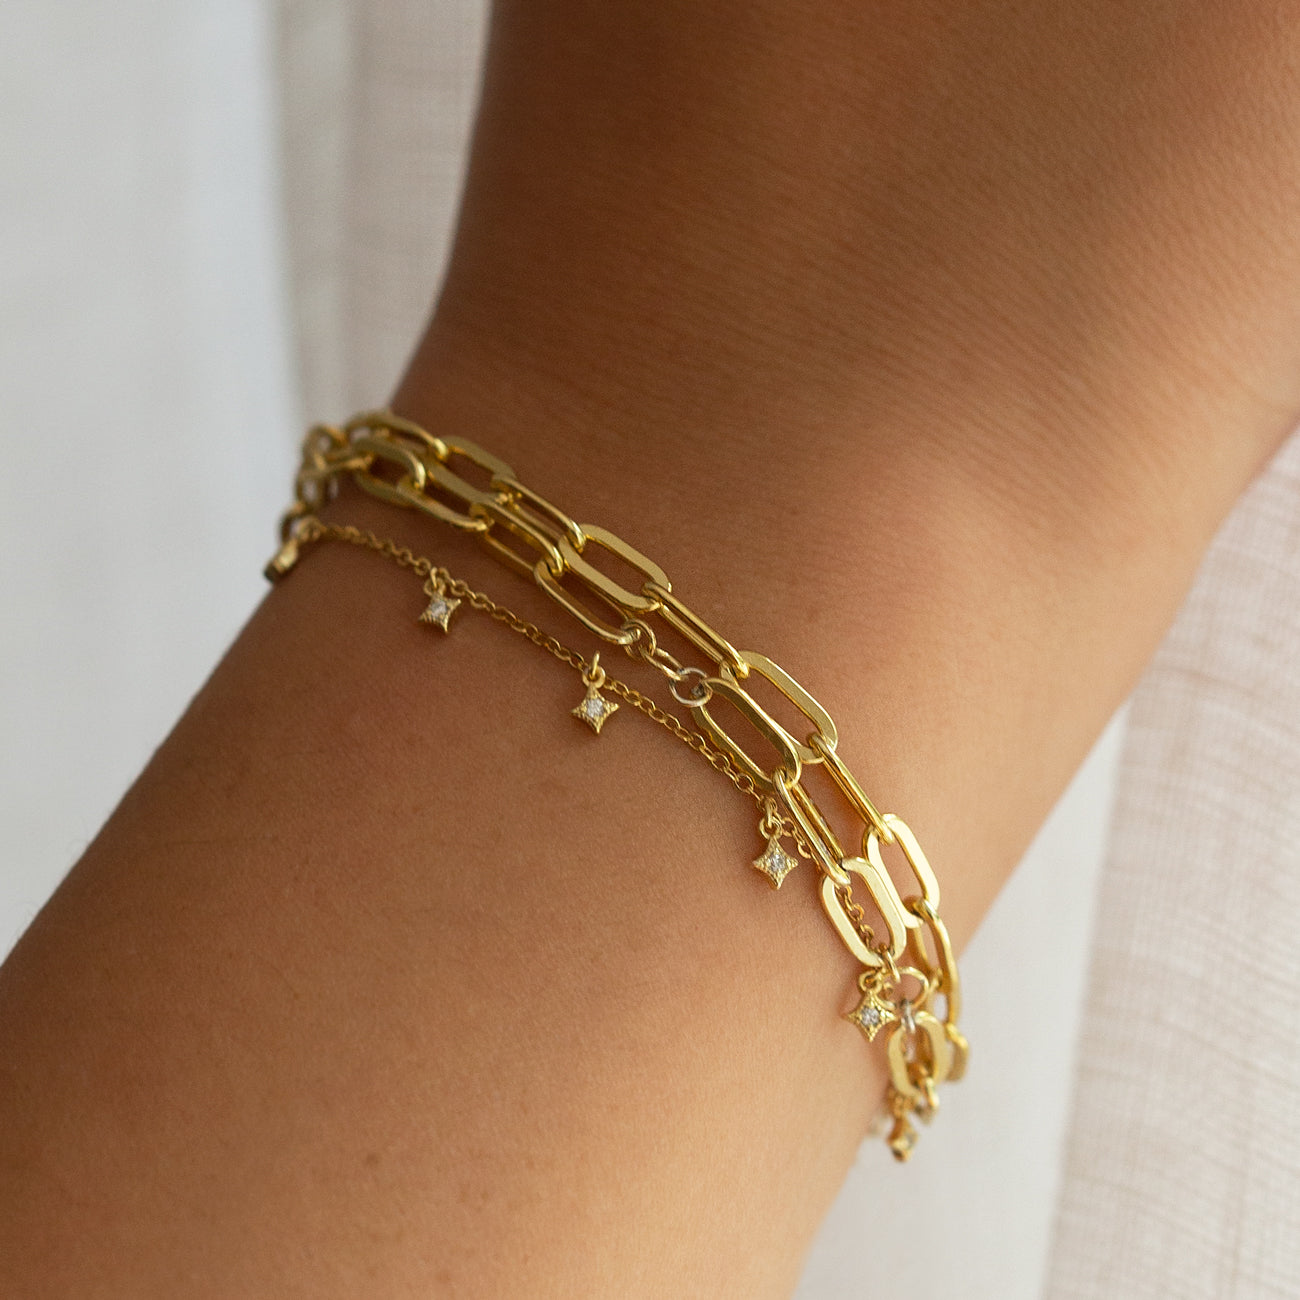 Gold Bracelet Stack paired with Gold Dangle Bracelet